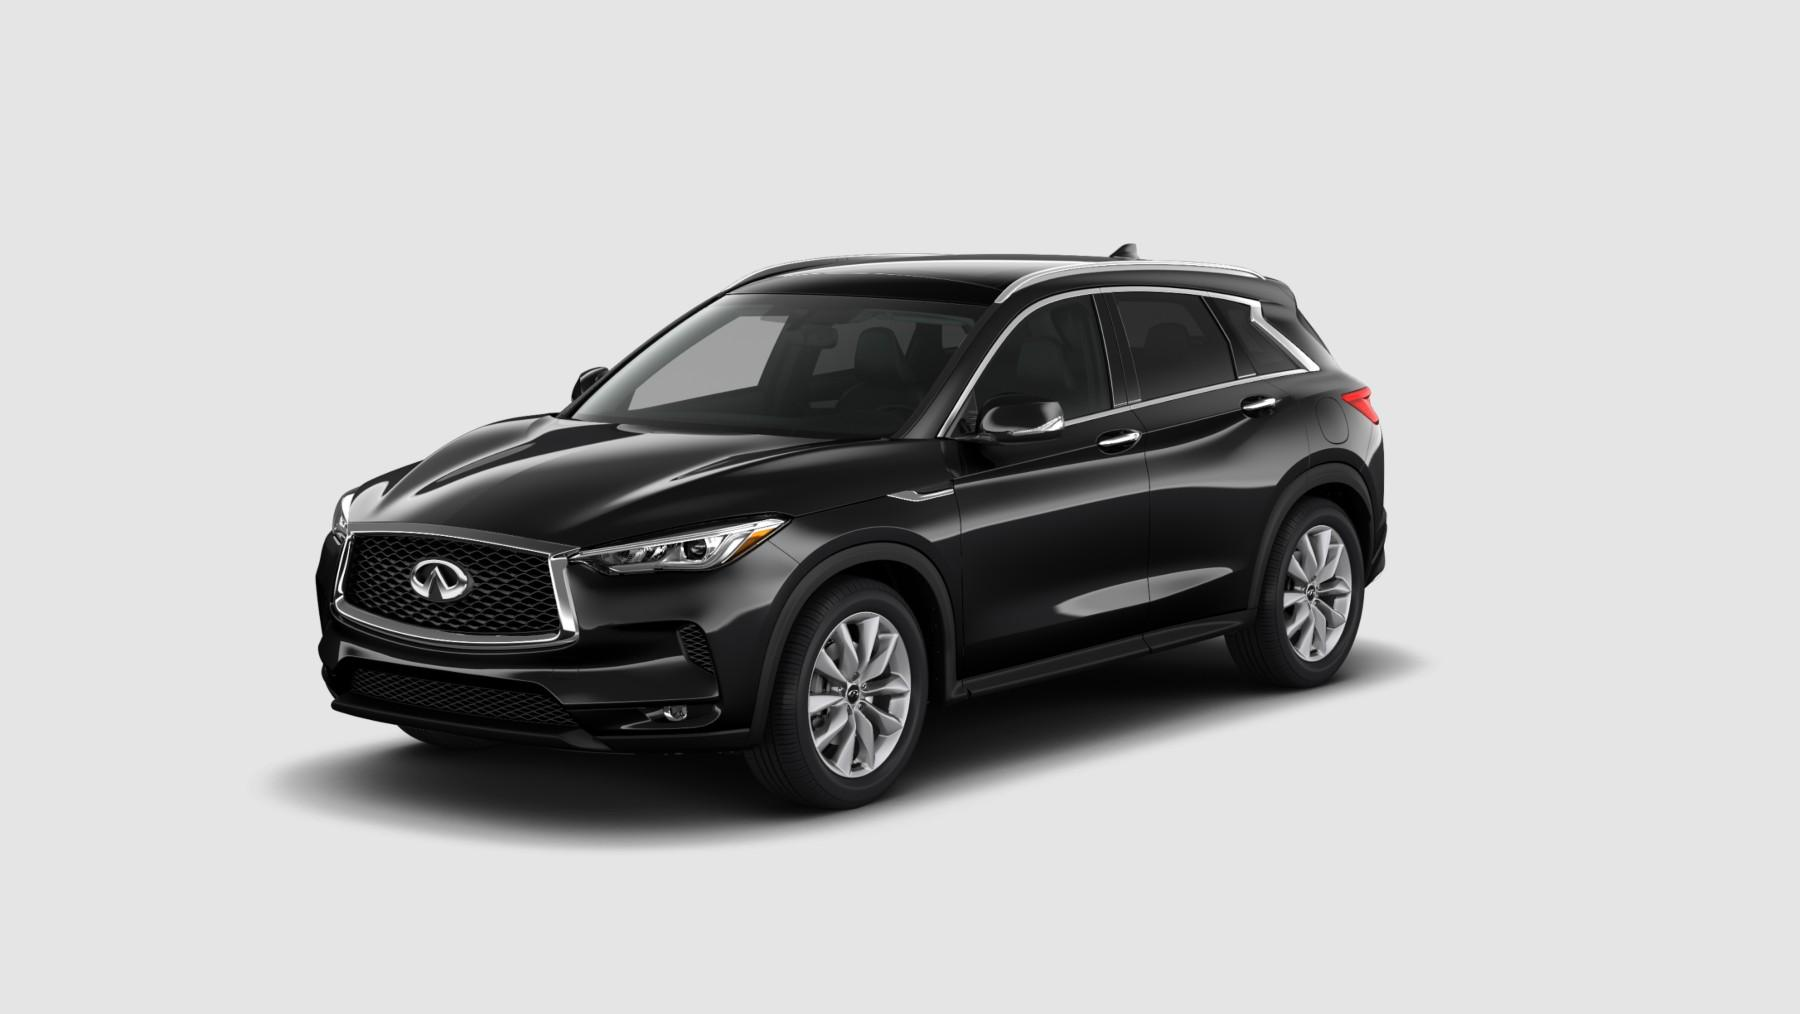 2019 INFINITI QX50 Vehicle Photo in Willow Grove, PA 19090